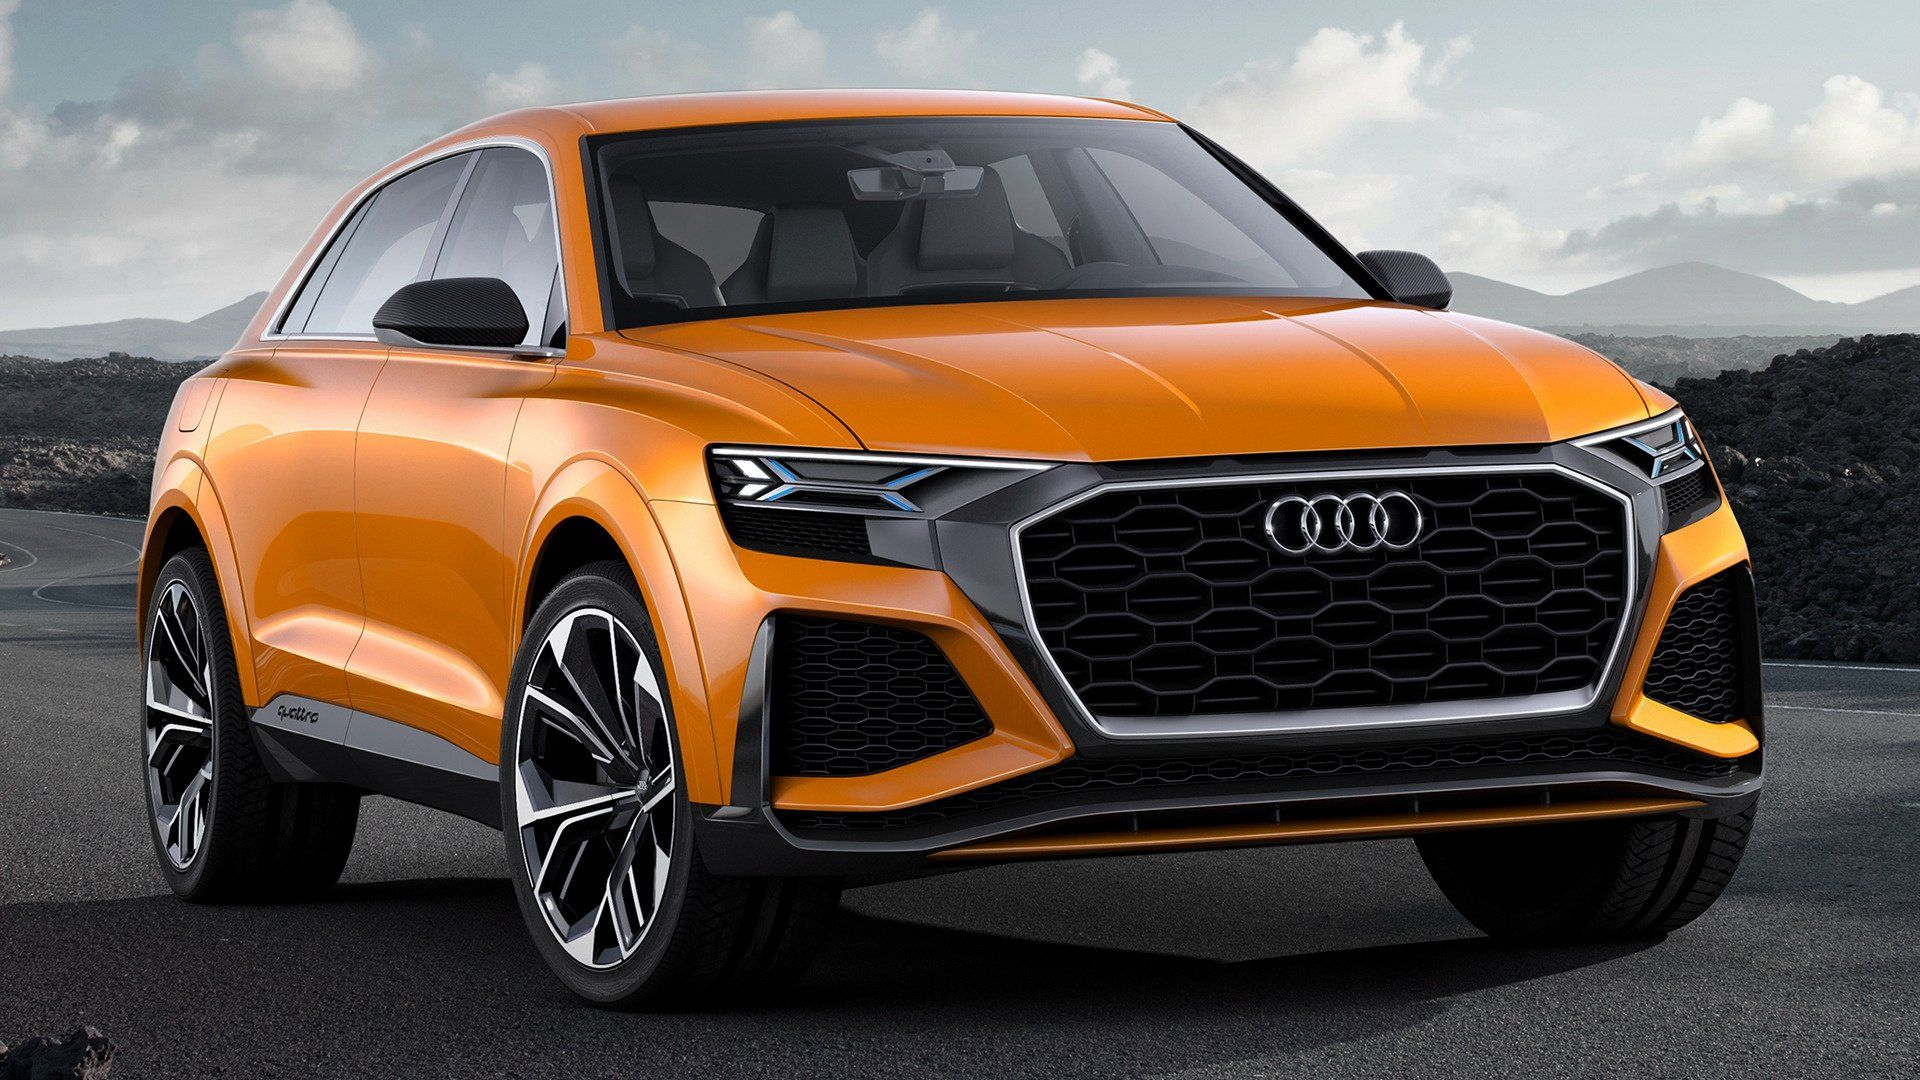 Audi Q8 Wallpapers For Iphone audi q8 wallpaper Audi